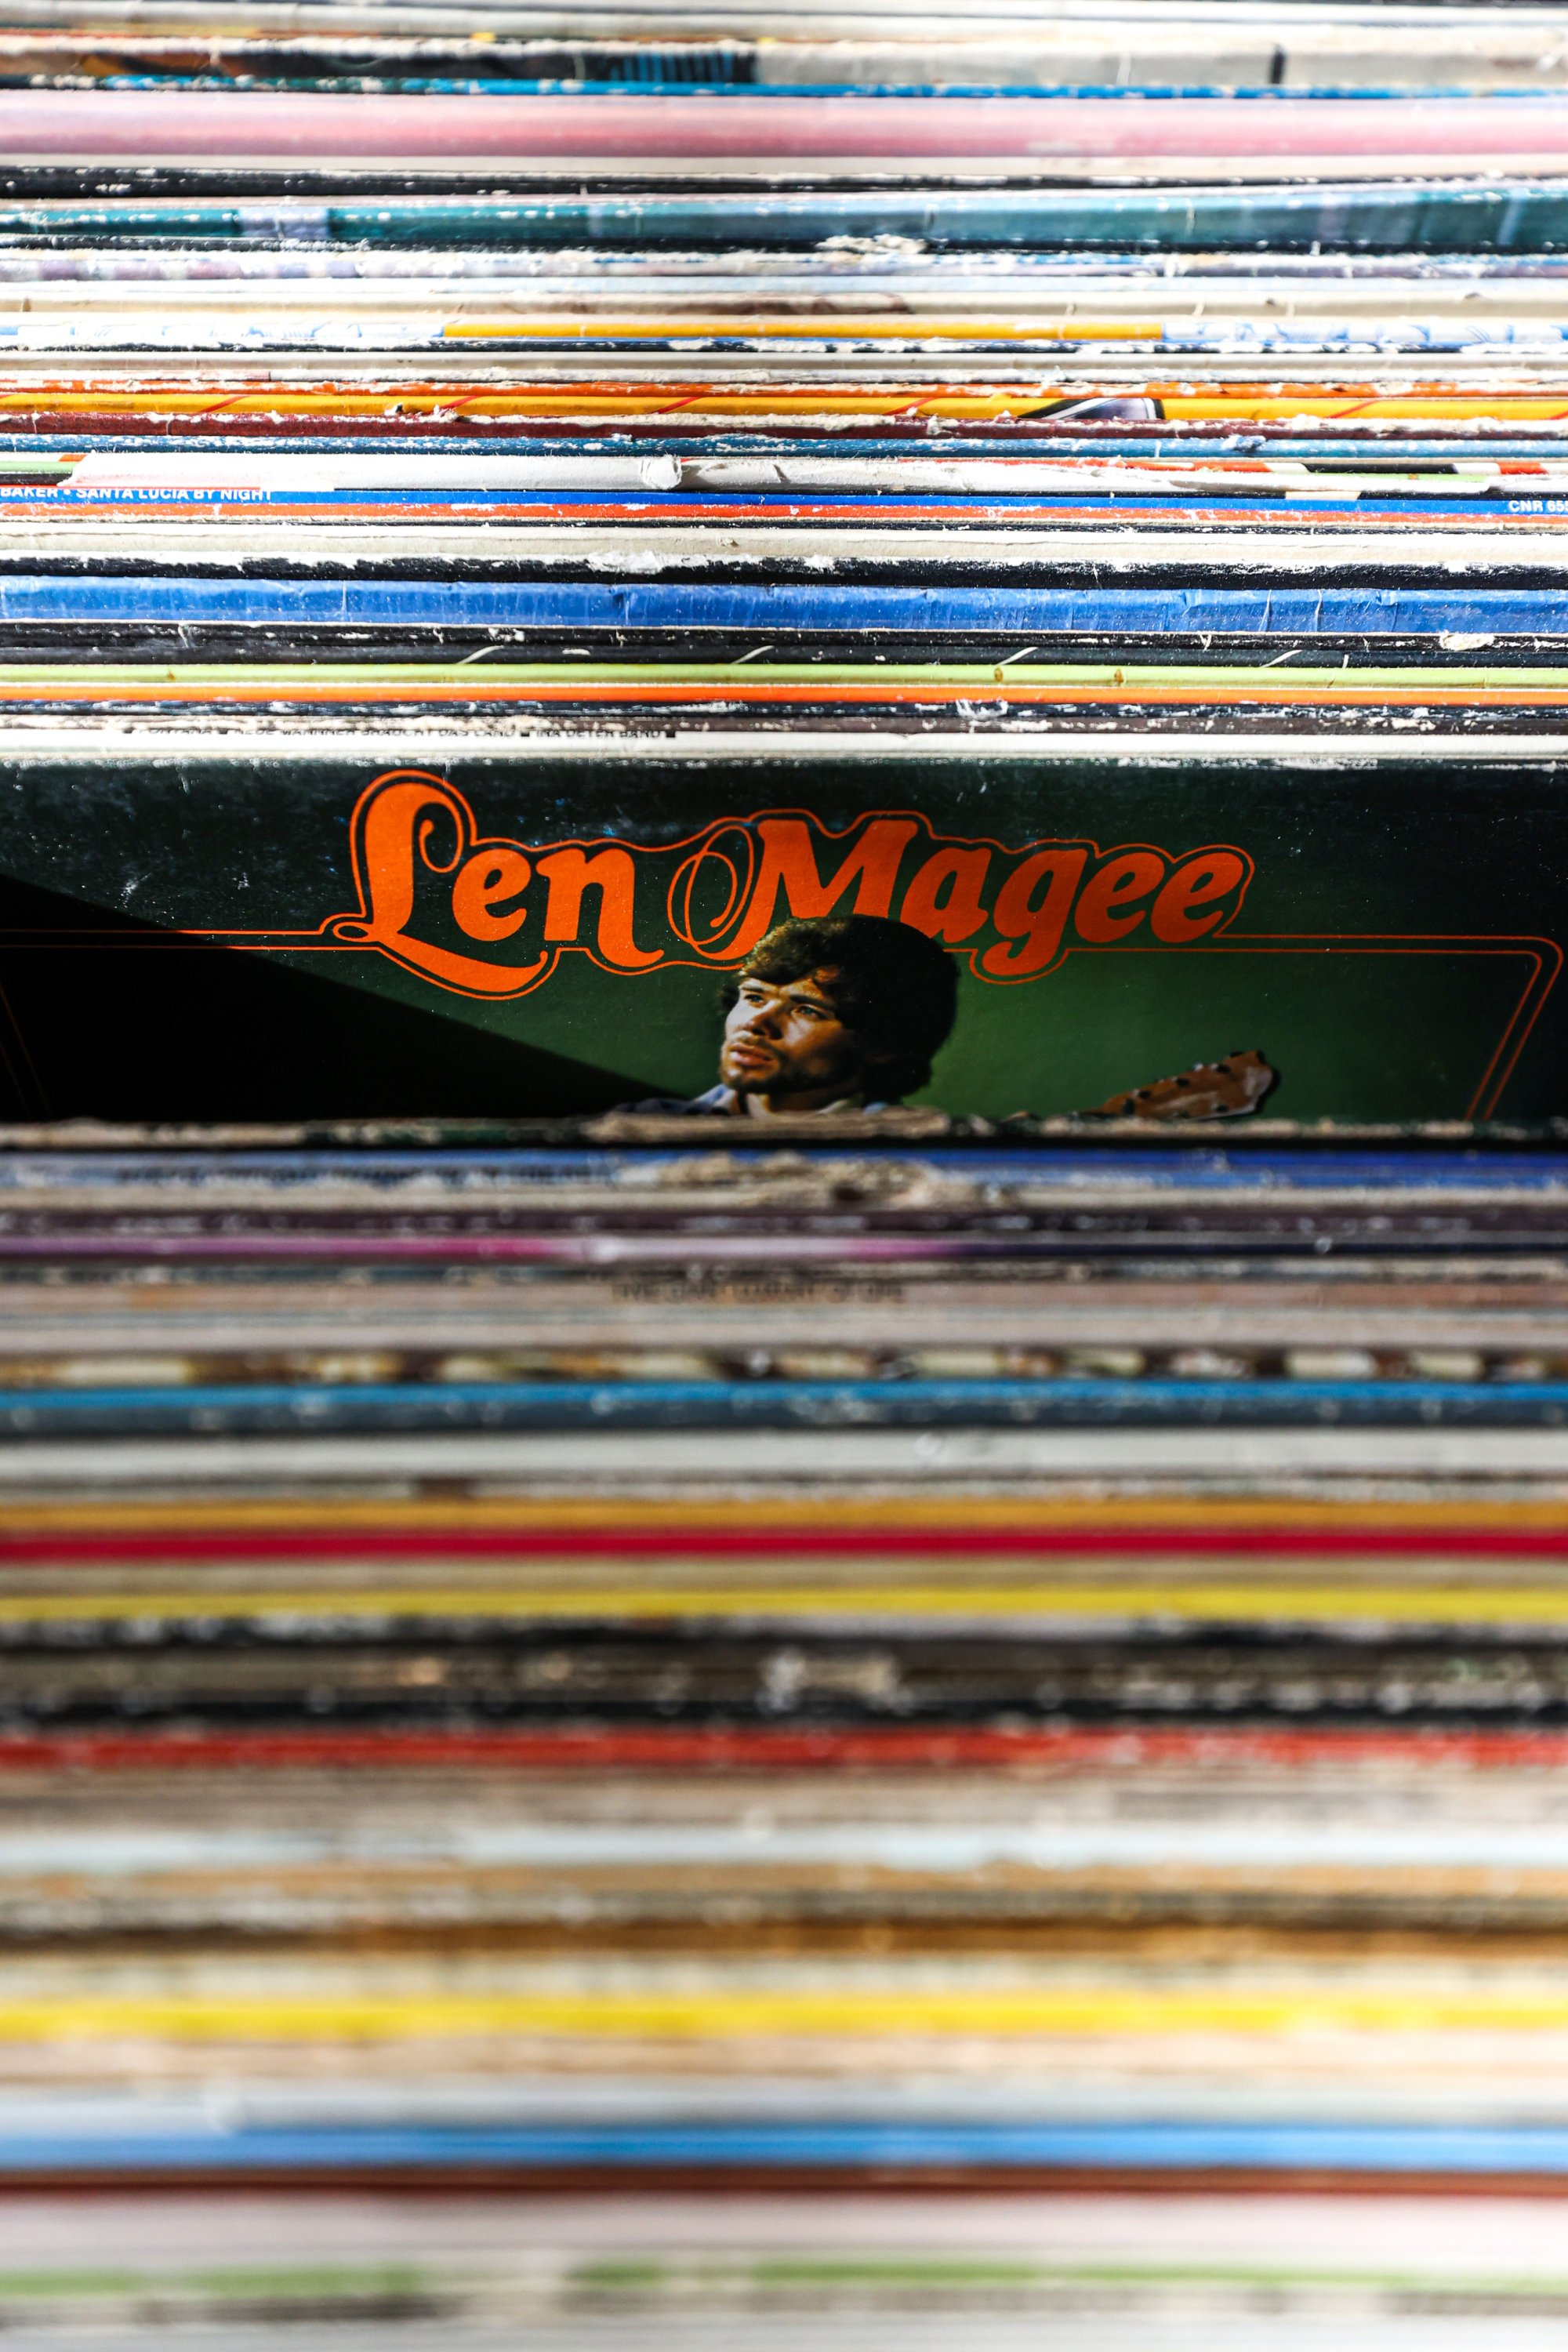 An album of Austalian singer Len Magee can be seen among several other vinyl records, Istanbul, Turkey, Jan. 28, 2021. (AA Photo)